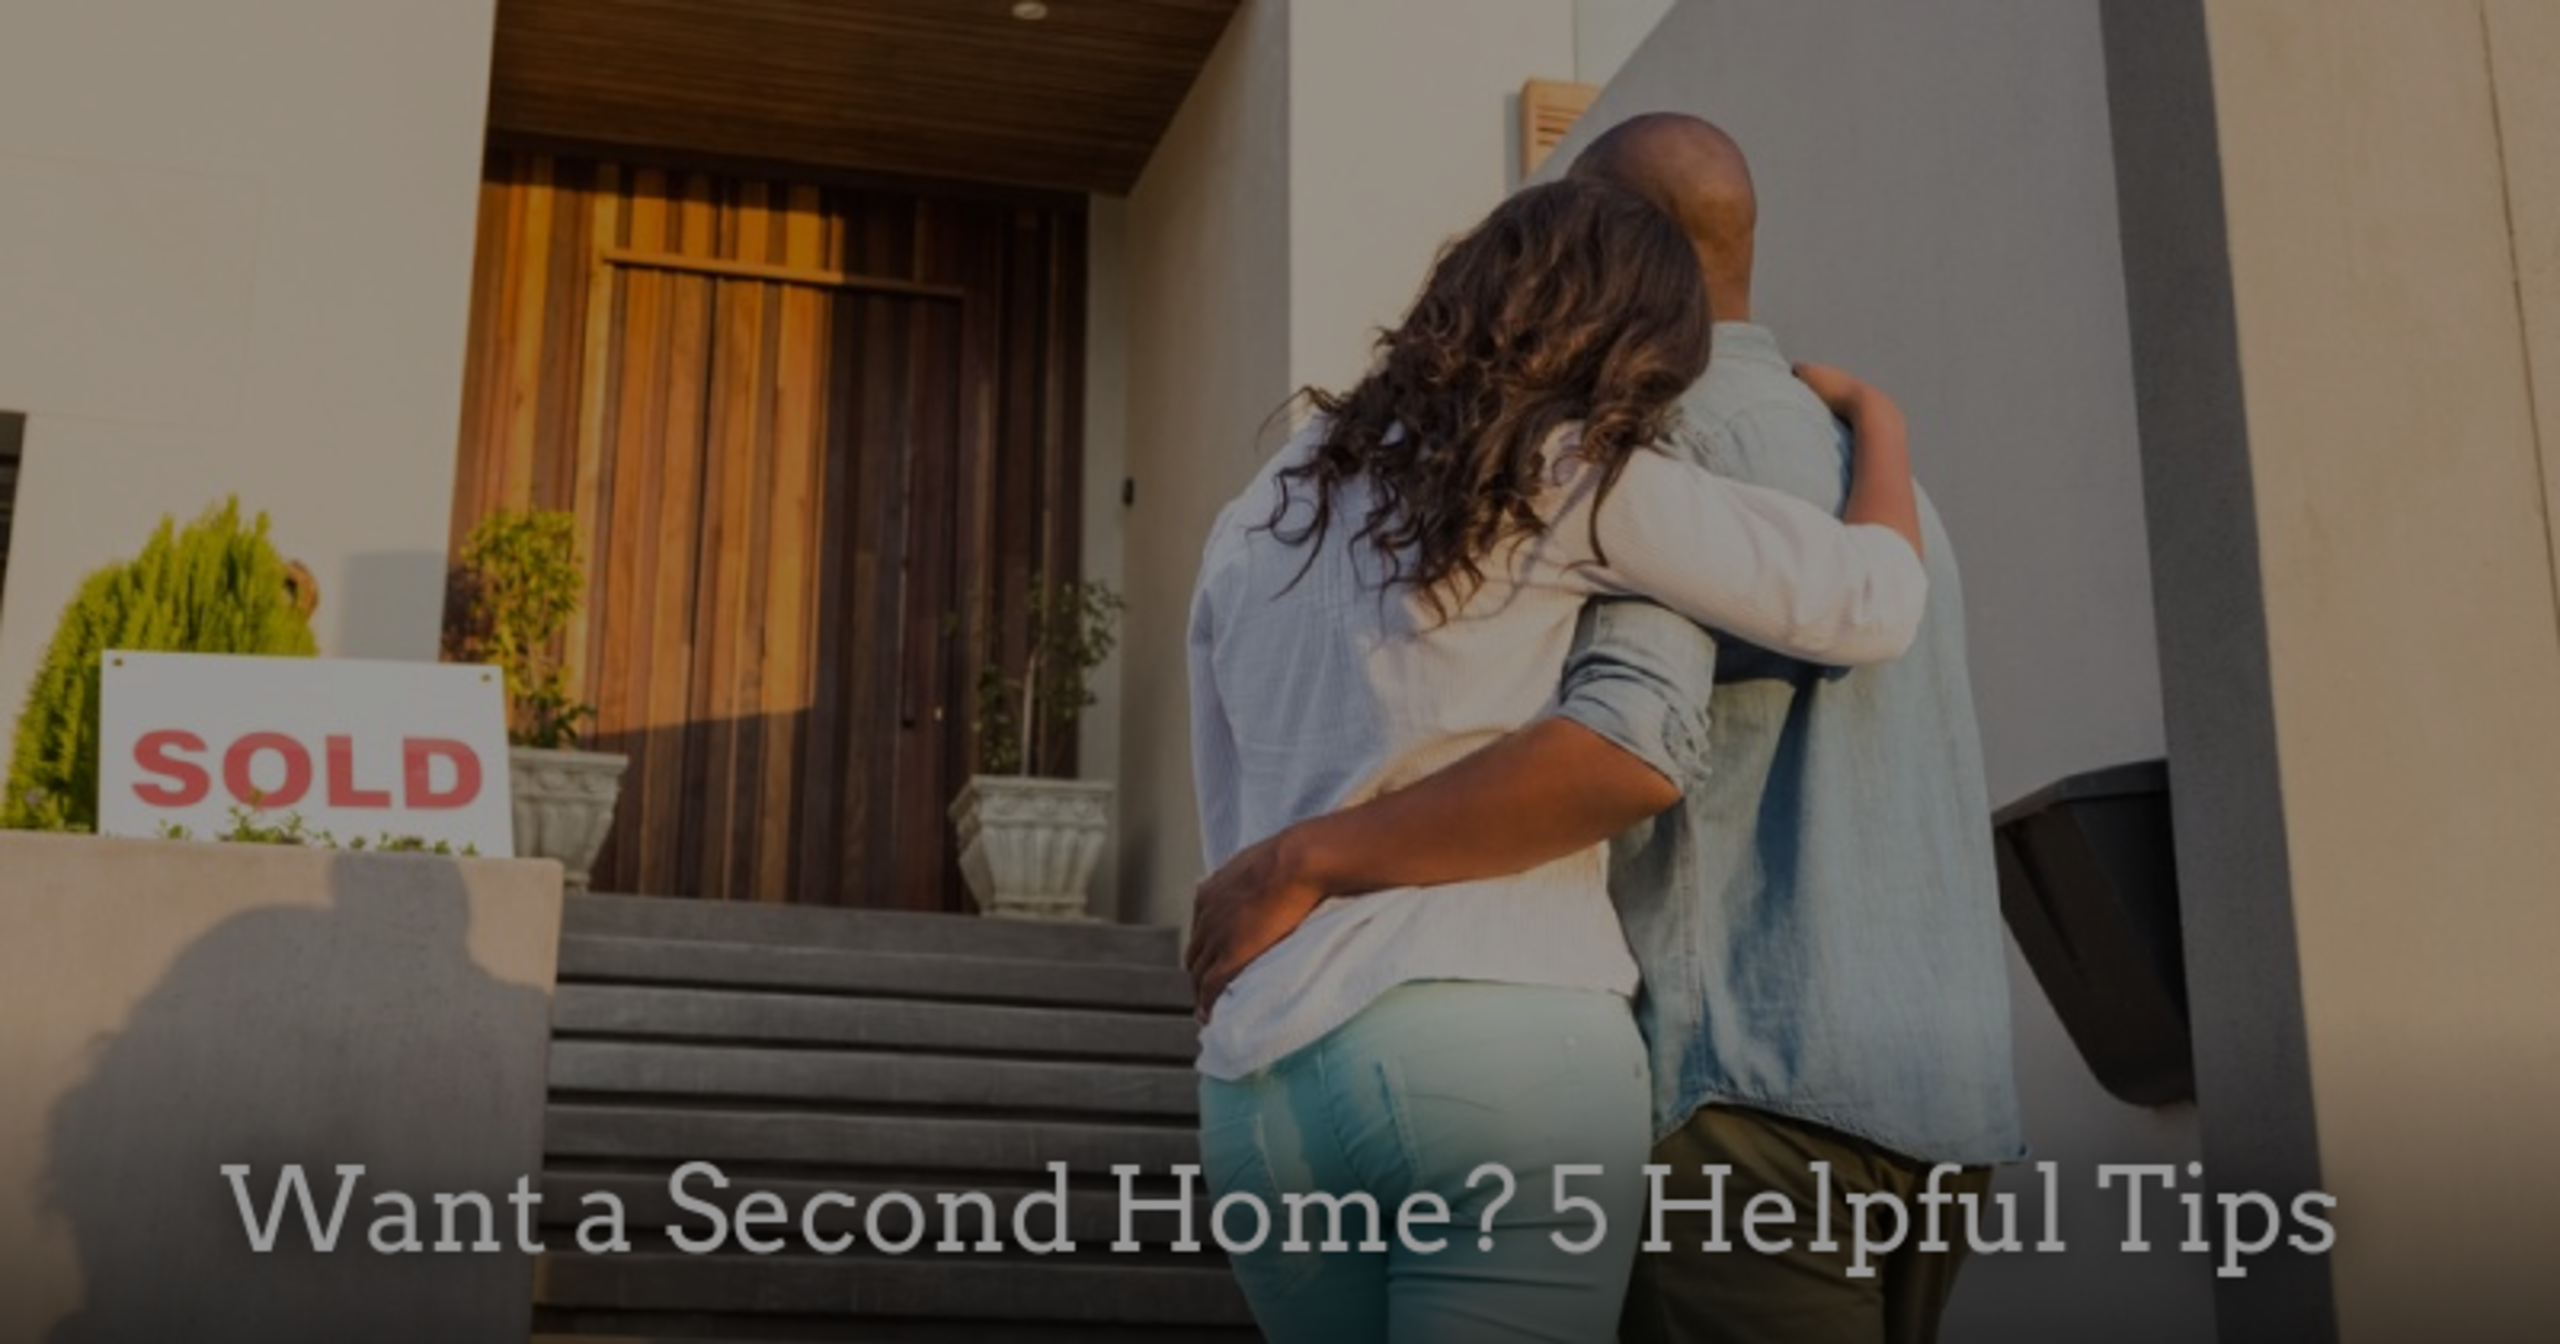 Want a second home? 5 Helpful Tips.